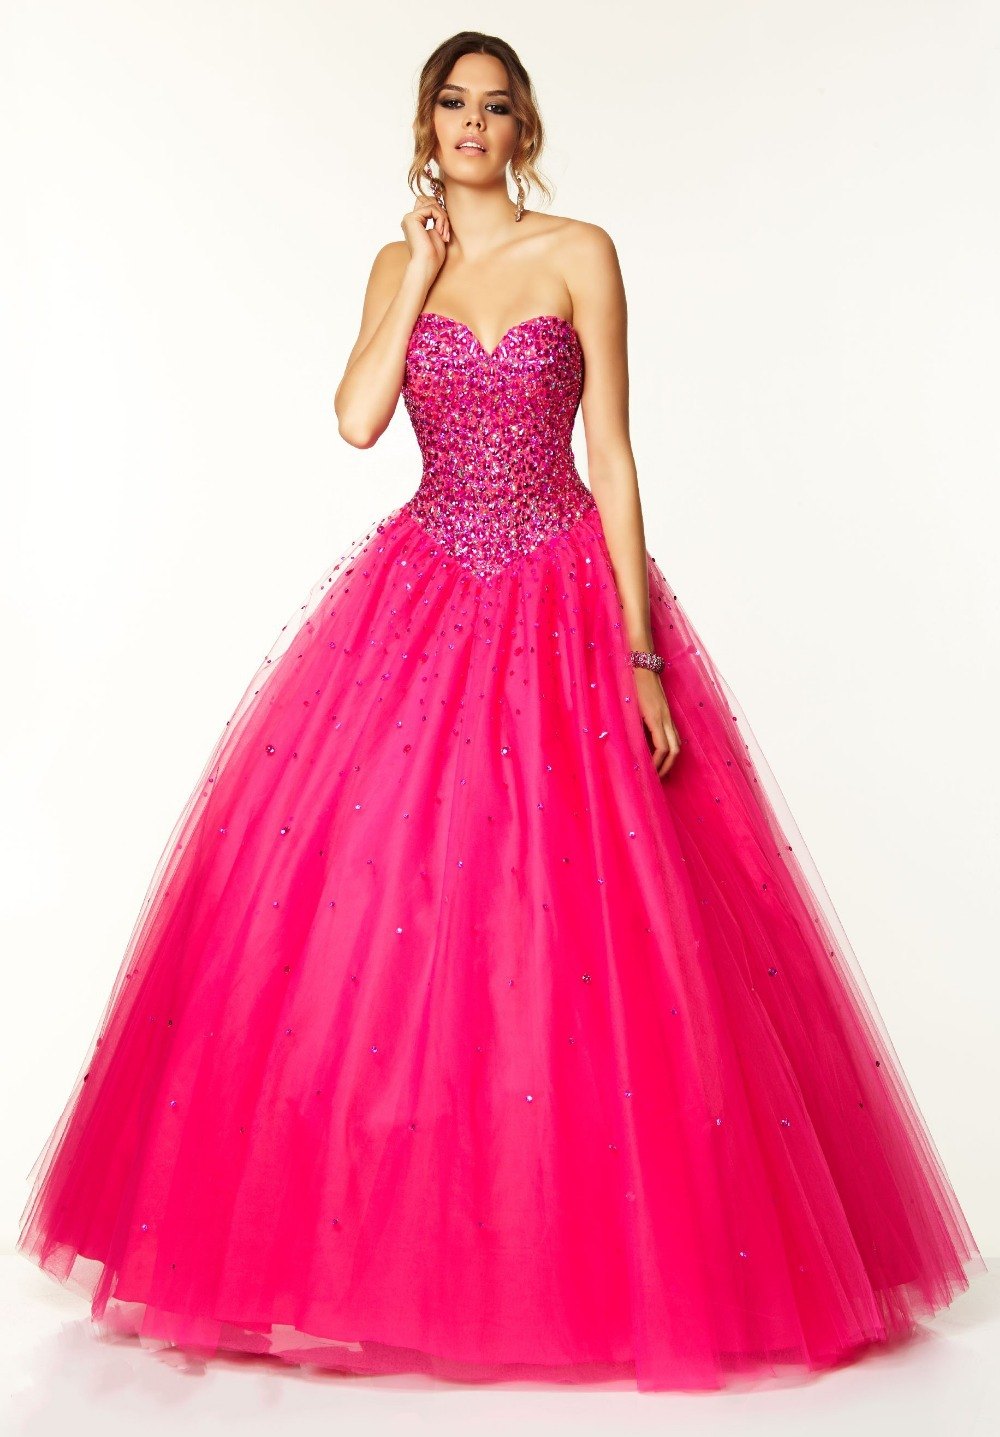 Pink Prom Dresses Uk Promotion-Shop for Promotional Pink Prom ...